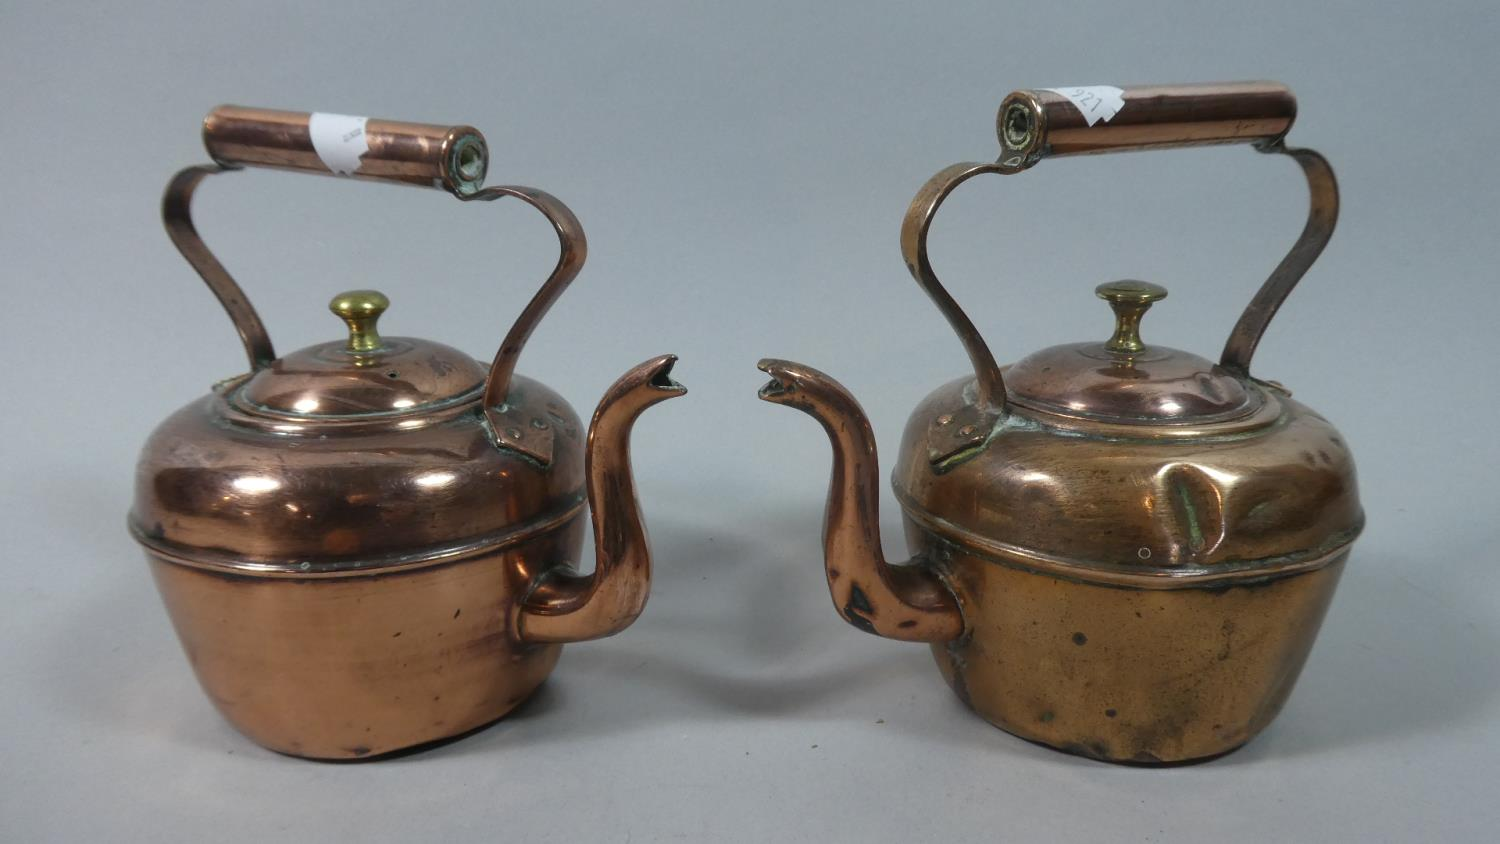 A Near Pair of 19th Century Small Copper Kettles, The Tallest 15cm High